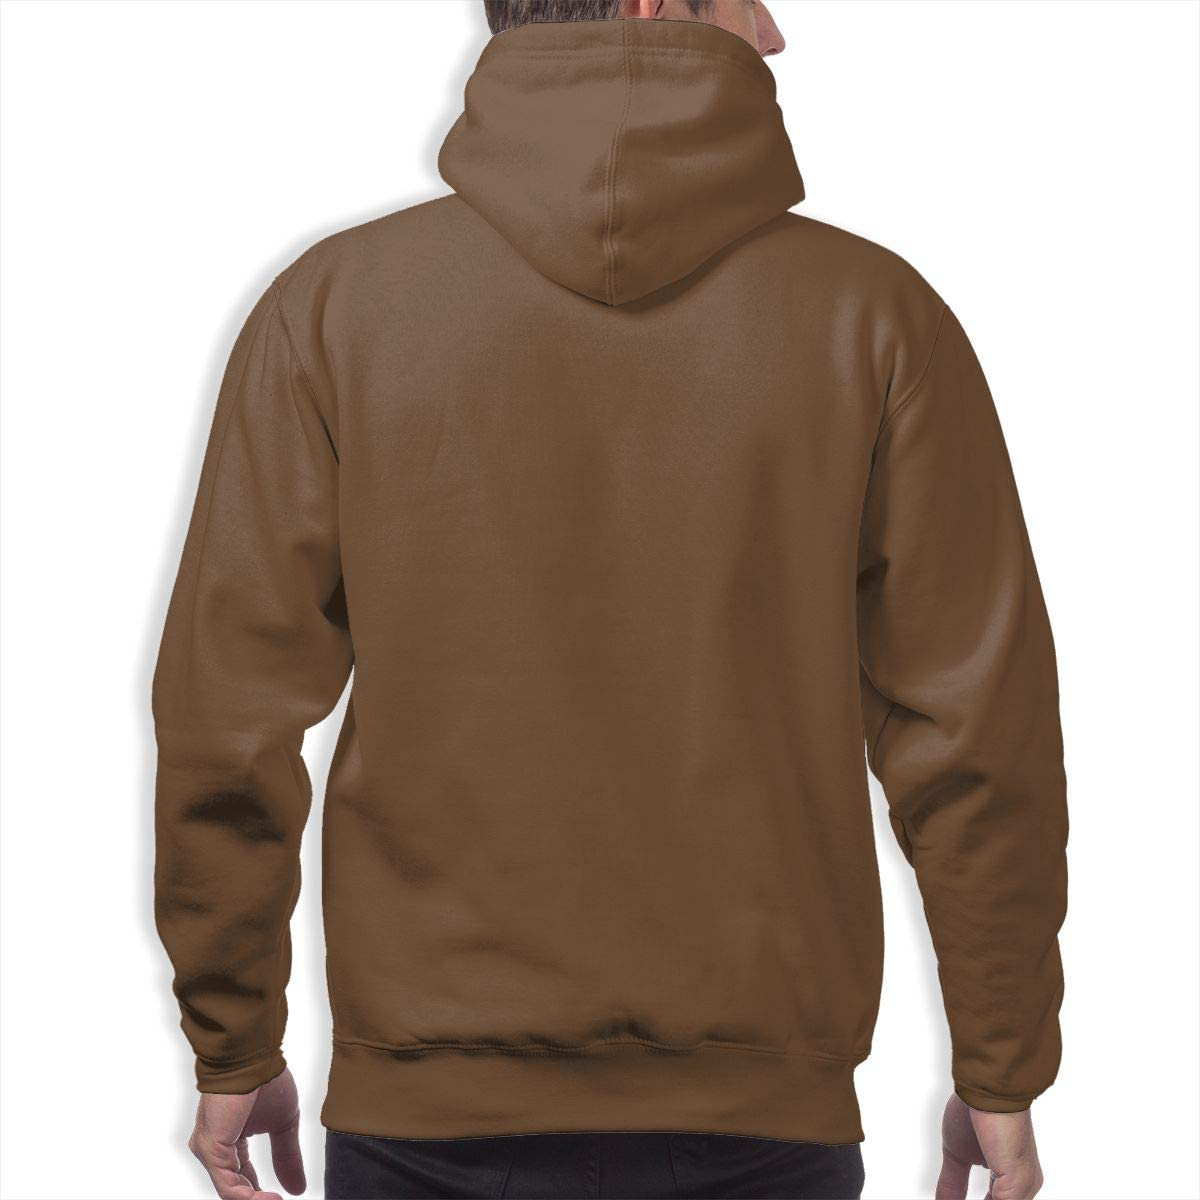 Brown Full-Length Sweater Mens Hoodie Sweater